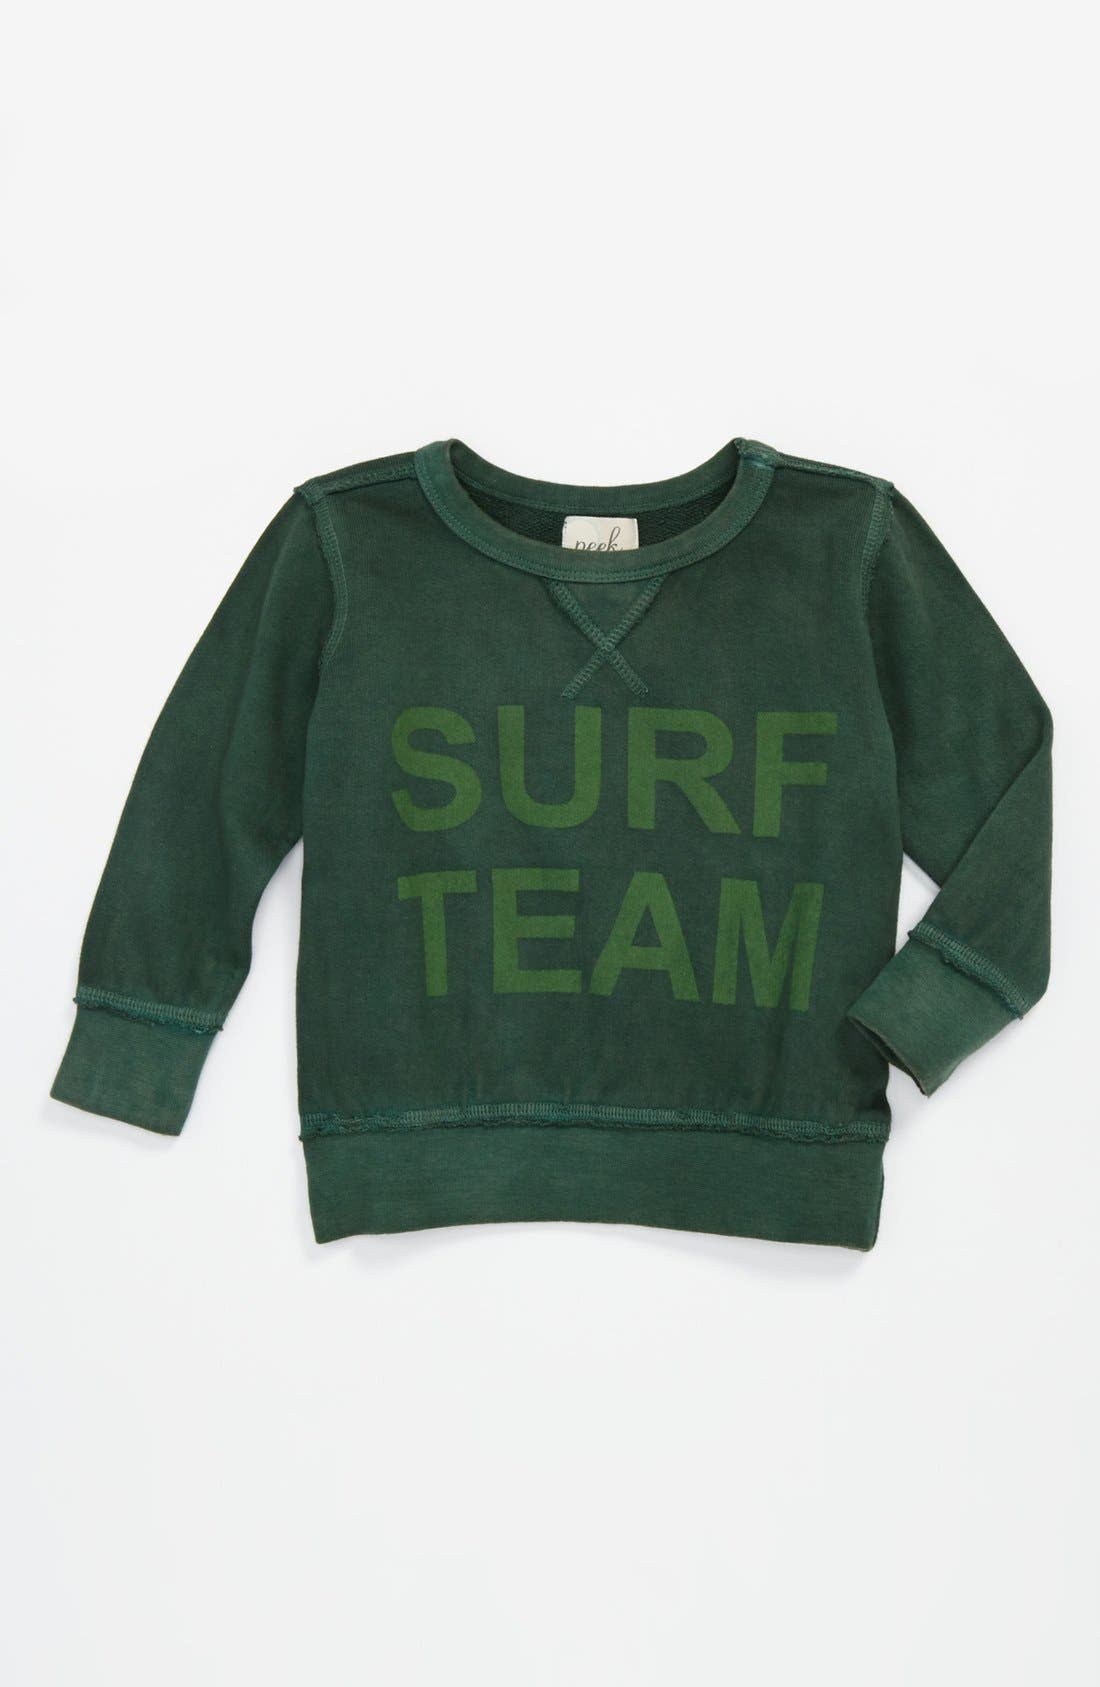 Main Image - Peek 'Surf Team' Sweatshirt (Baby Boys)